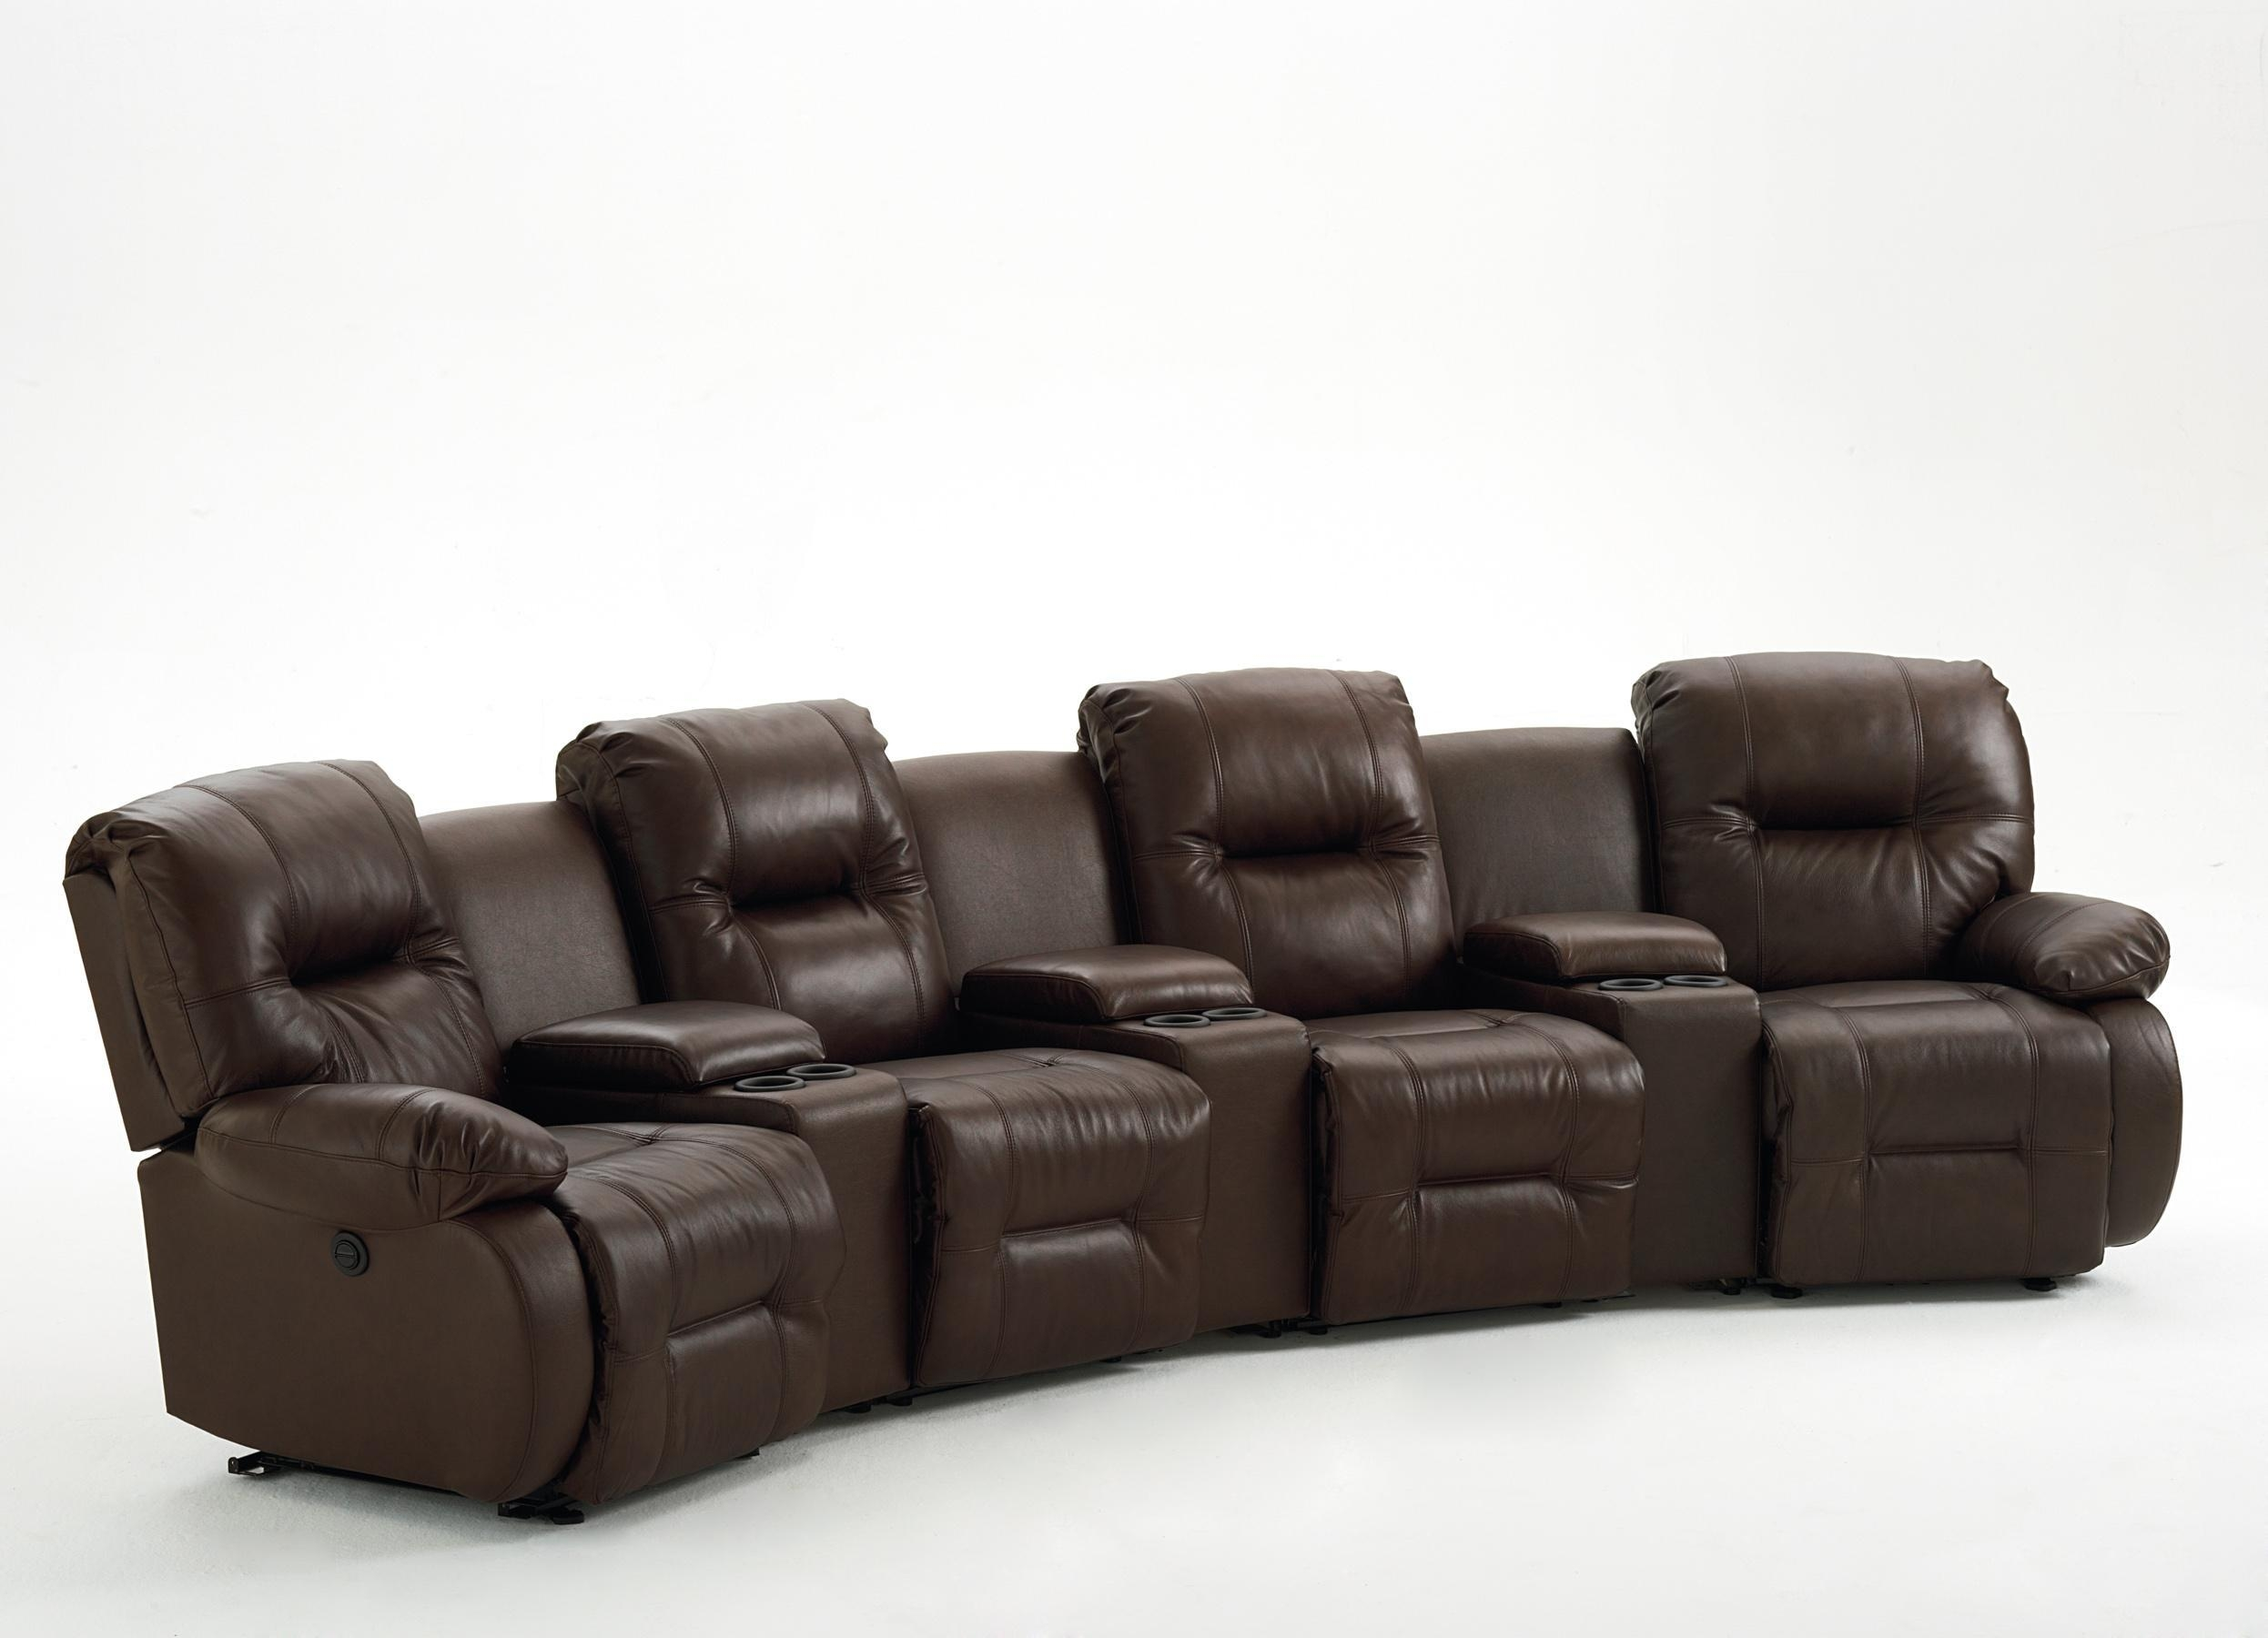 Seven Piece Power Reclining Home Theater Group With Three Drink For Sofas With Drink Holder (Image 16 of 20)